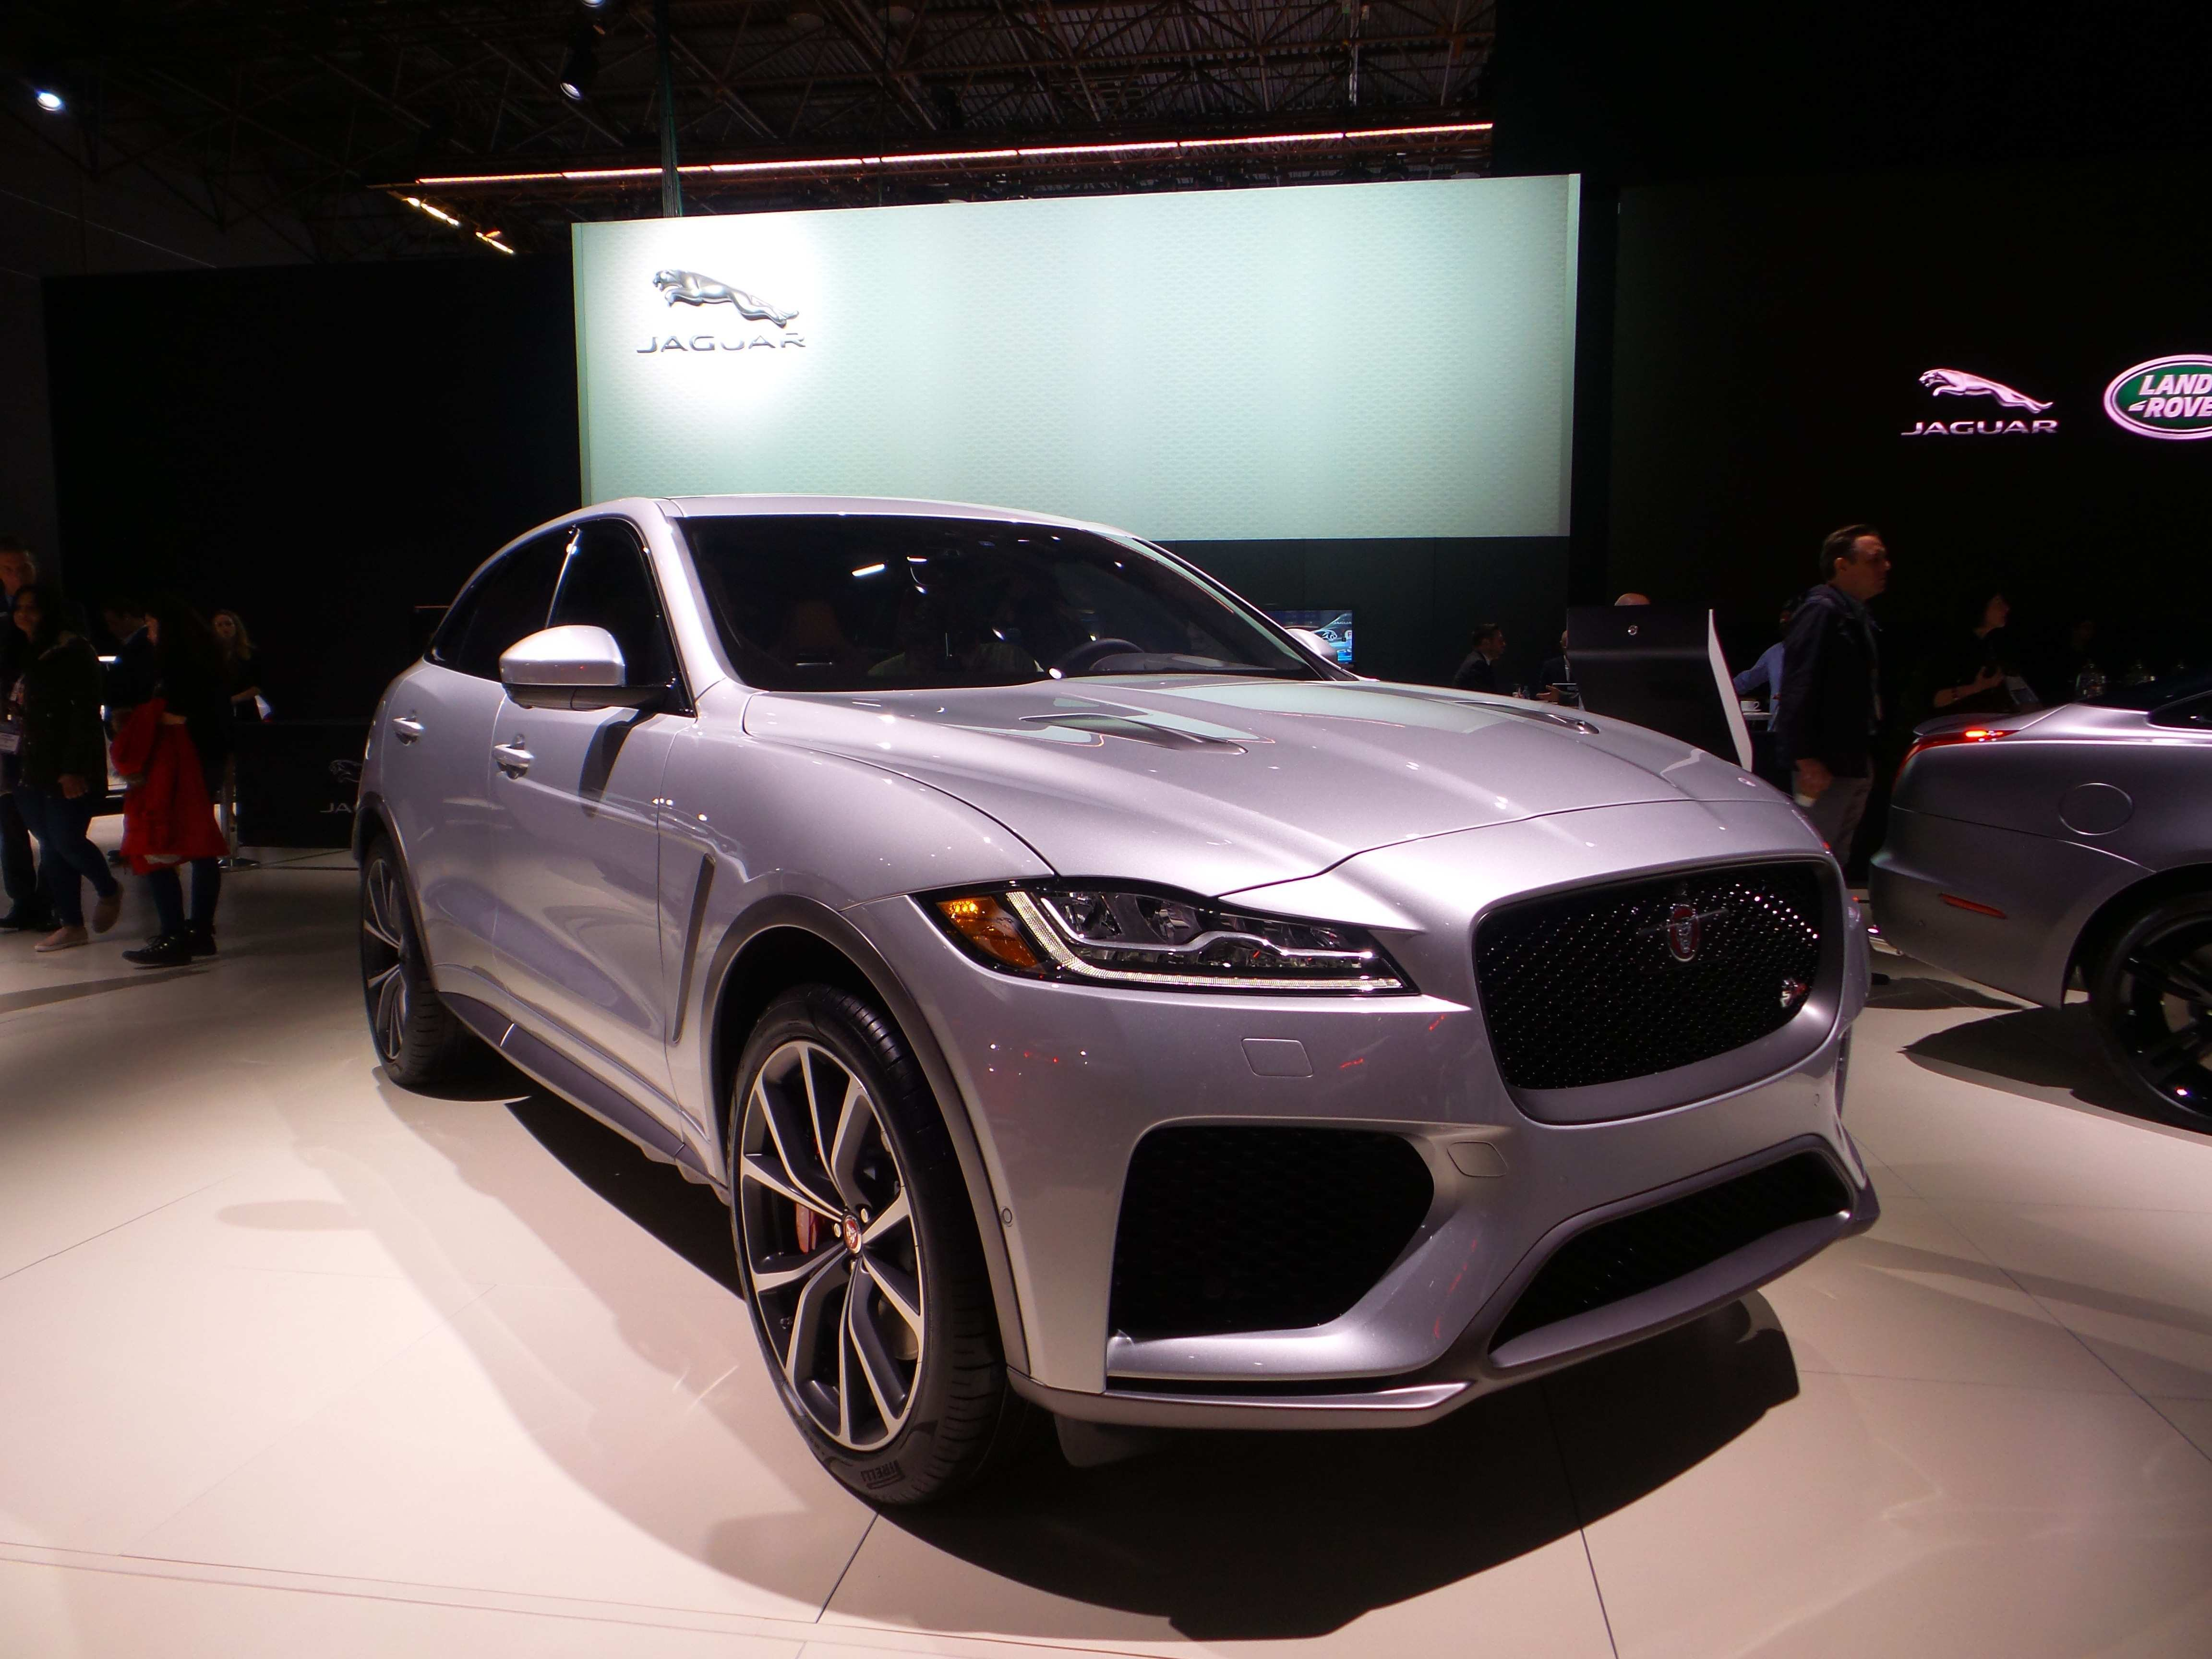 77 All New 2019 Jaguar F Pace Svr Price Price Configurations for 2019 Jaguar F Pace Svr Price Price